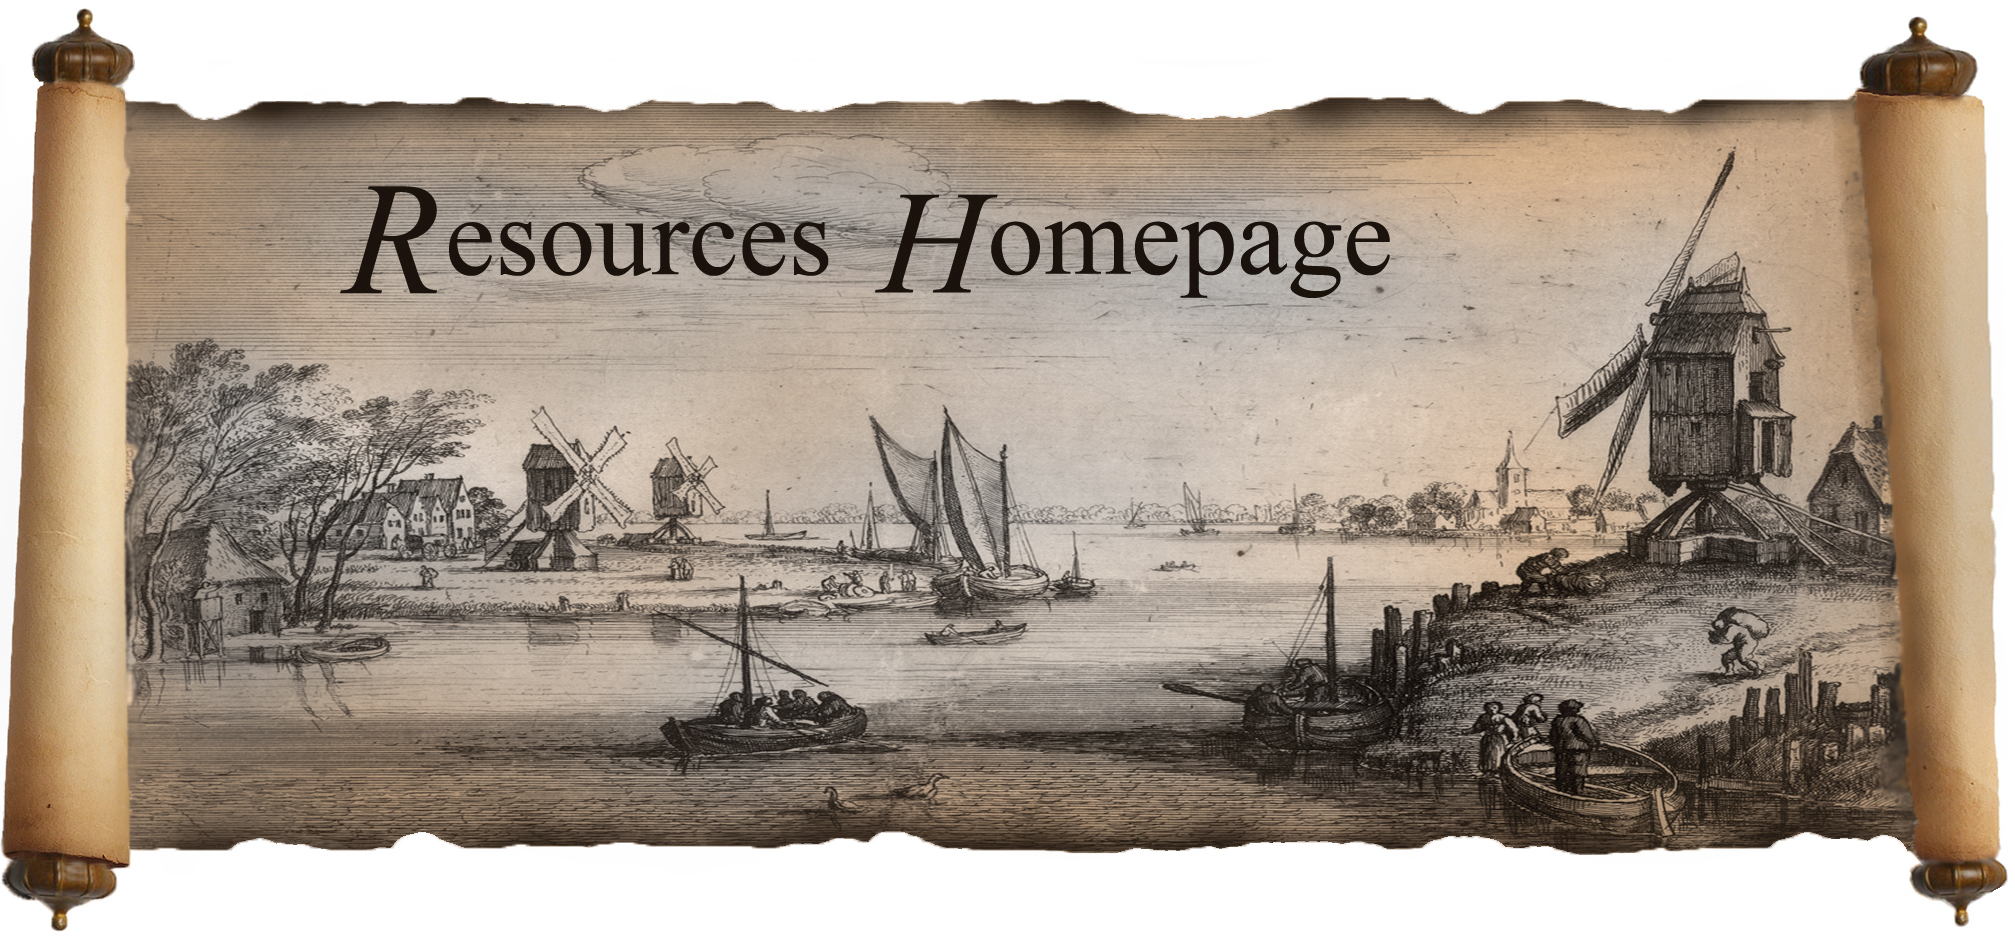 Resources Homepage